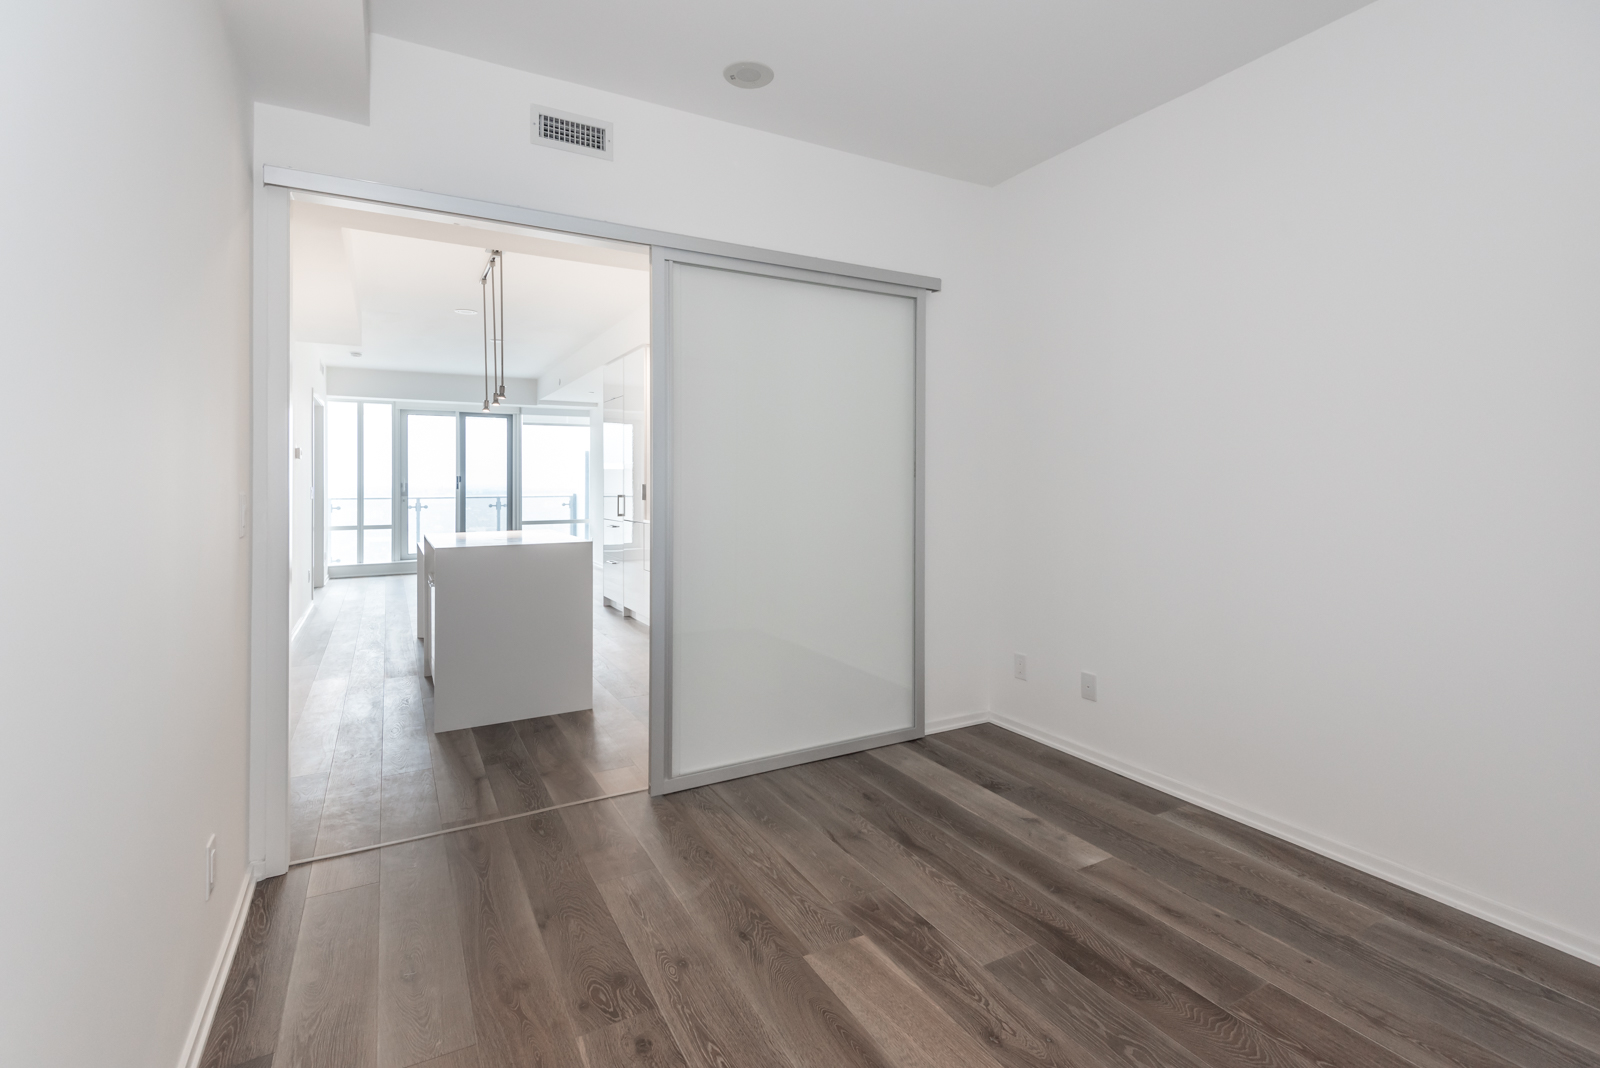 Photo showing bedroom, kitchen, and balcony. The best Toronto real estate agents same, less, rather, while, yet, opposite, much as, either as a result, hence and consequently.